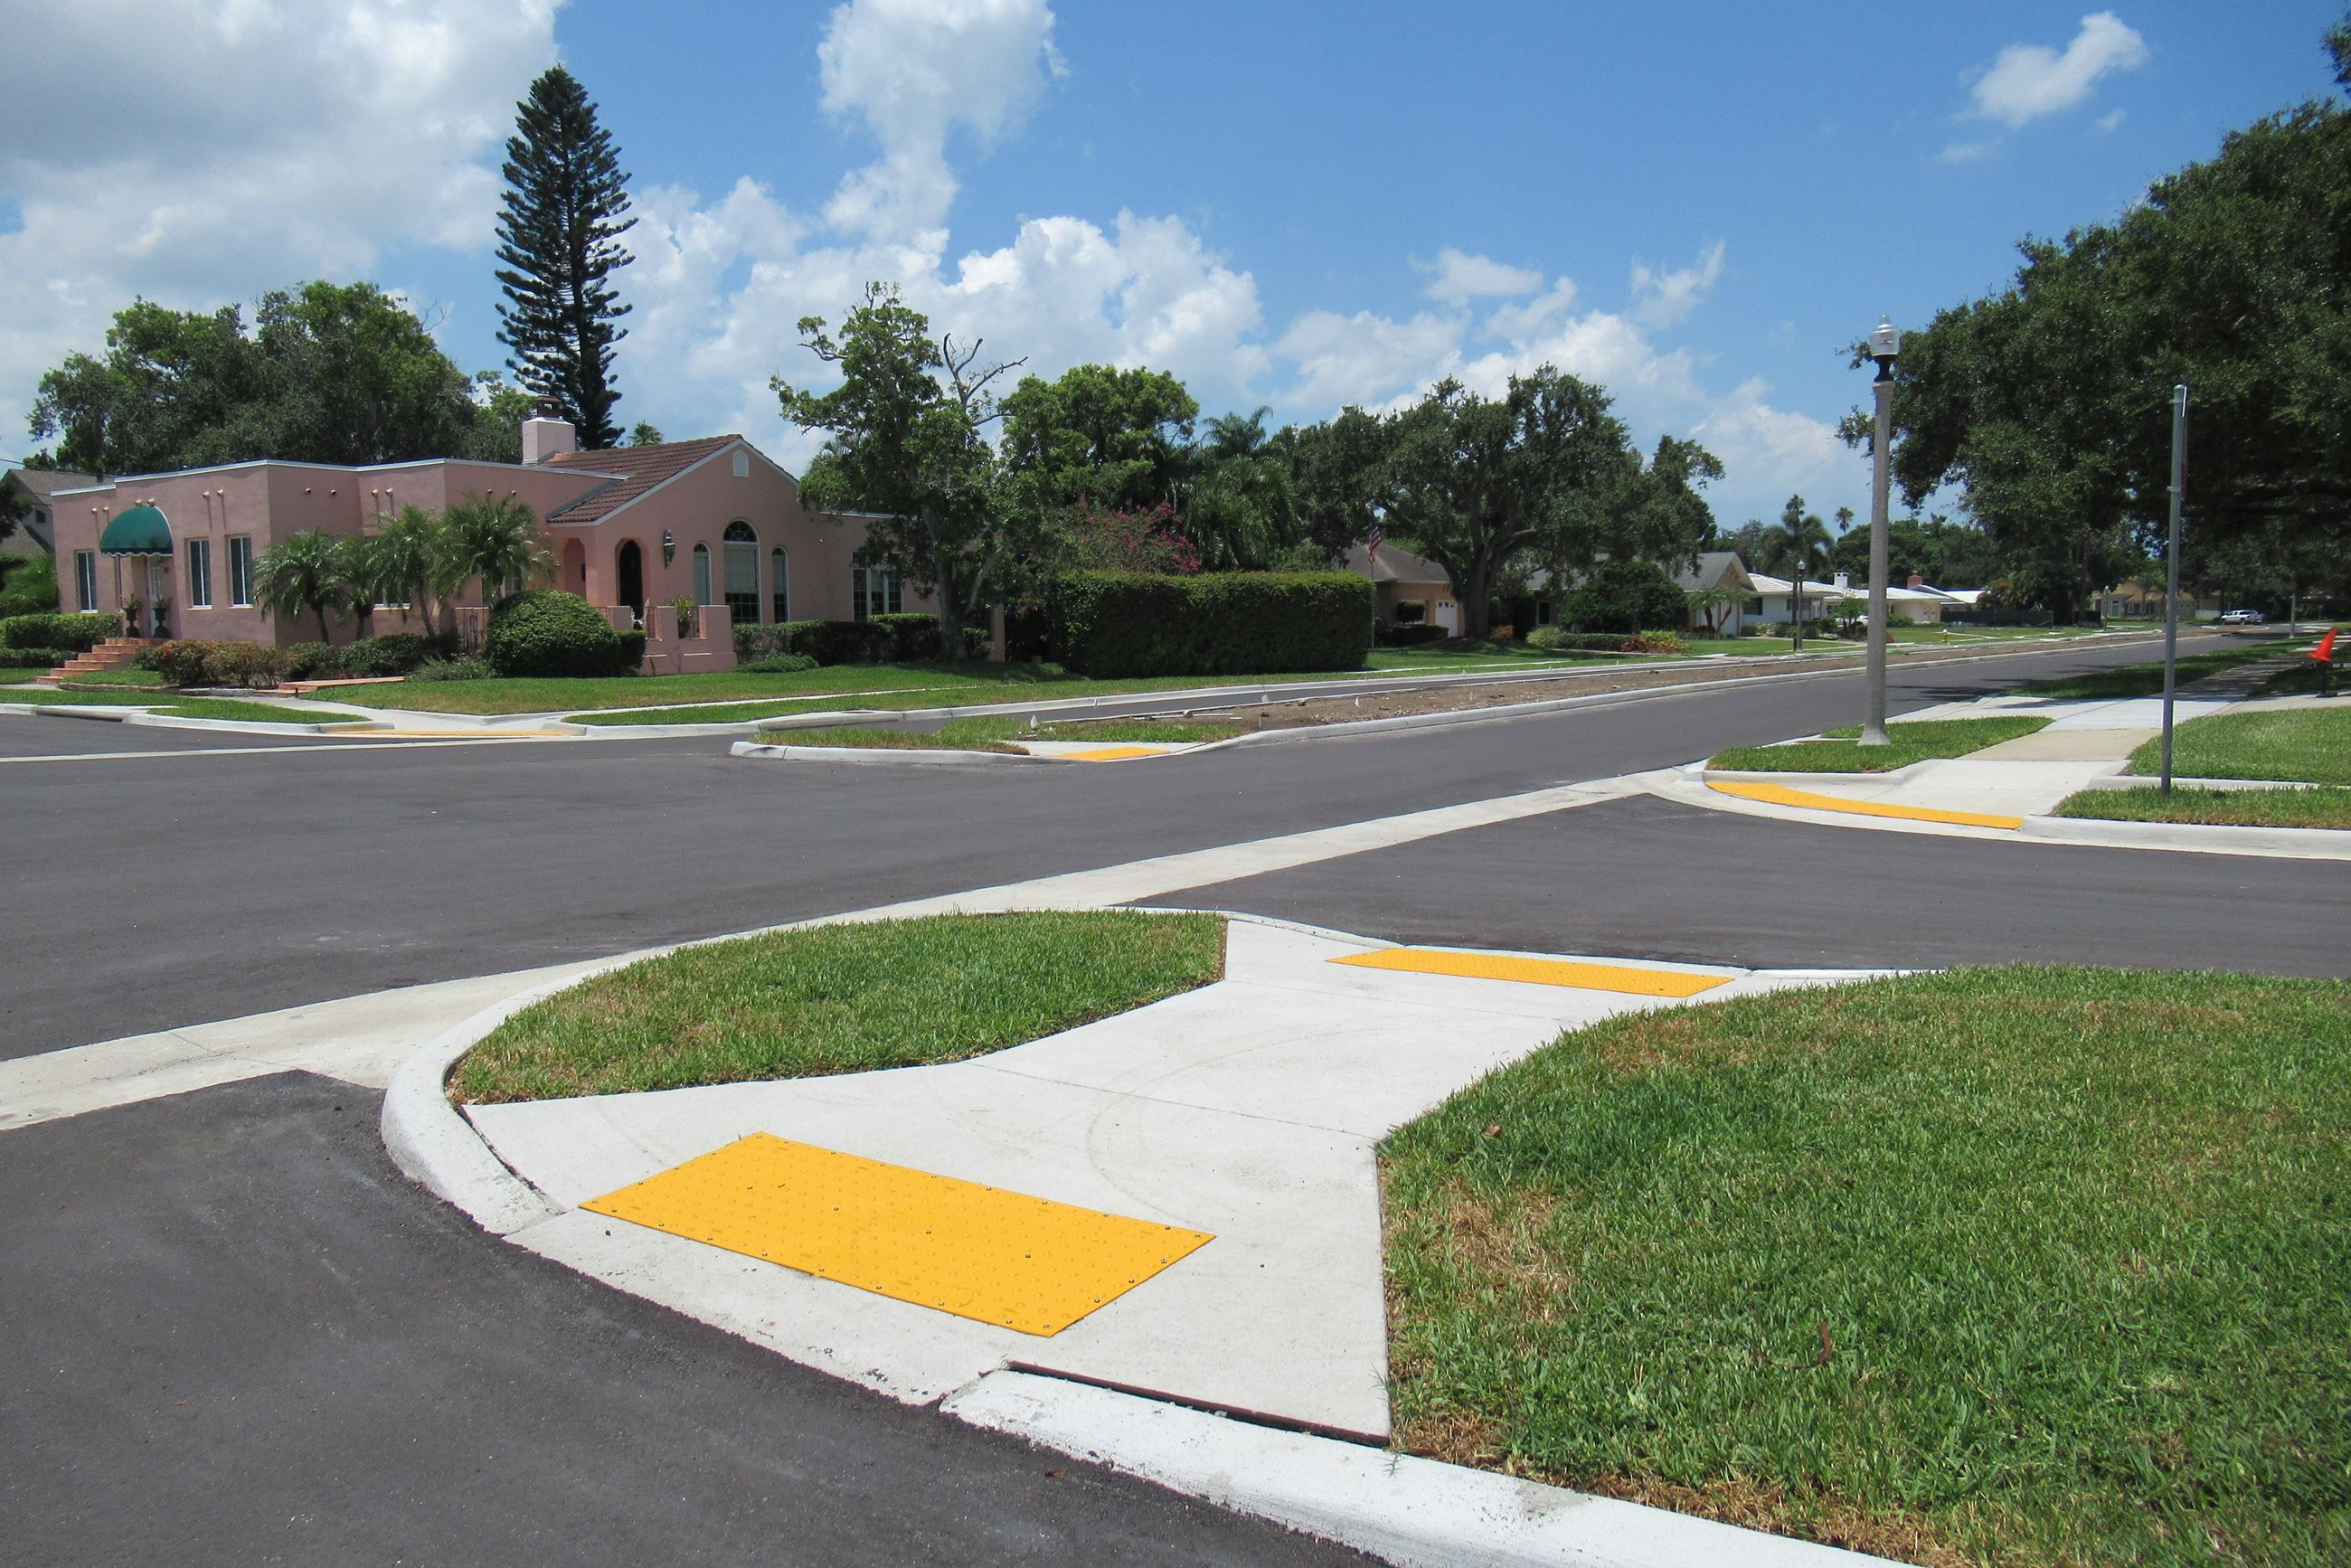 The Pinellas/Ponce Roadway Project near completion with fresh asphalt and sidewalk